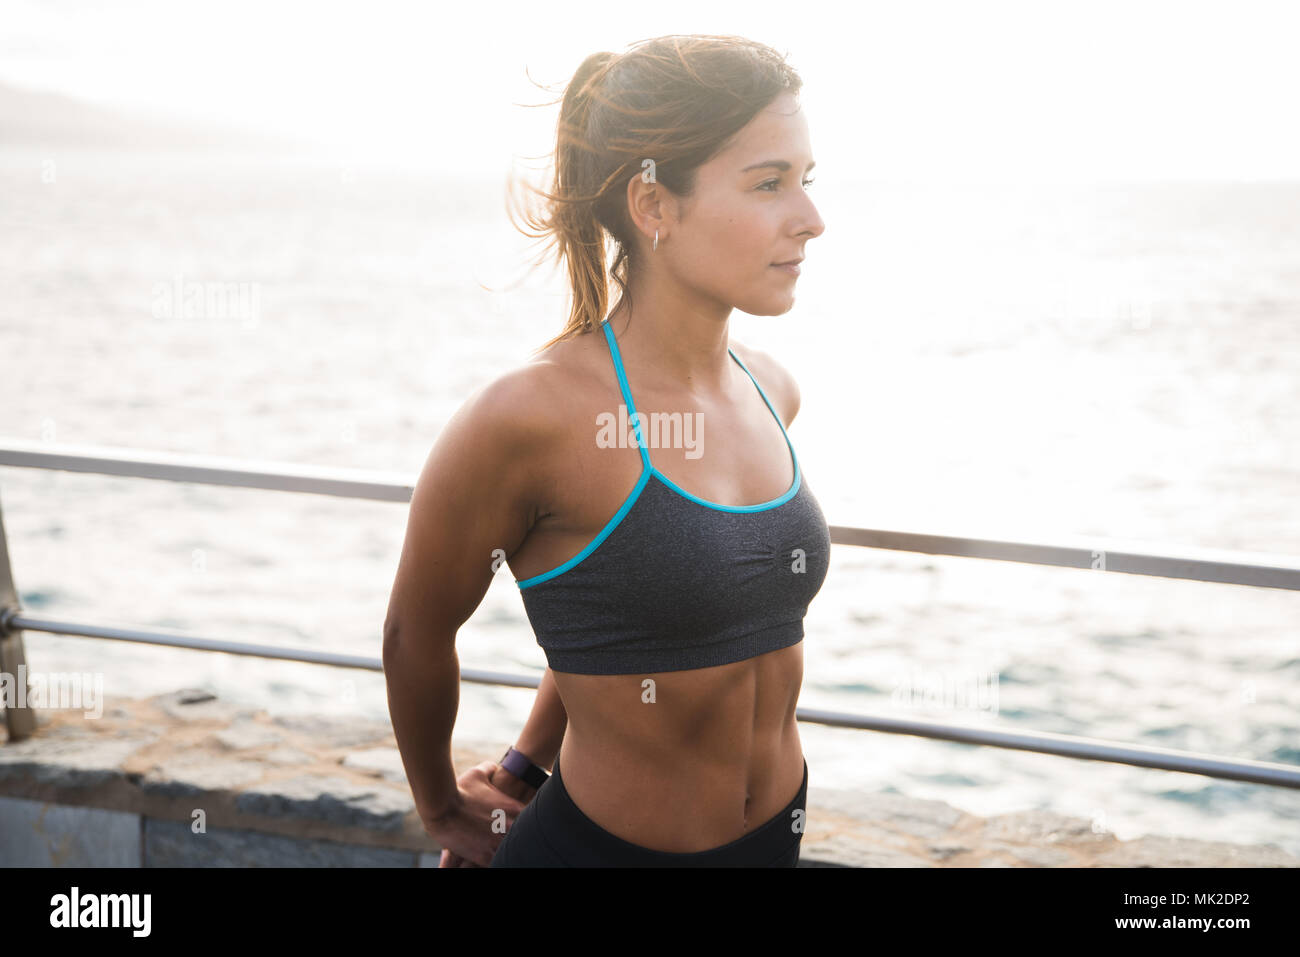 Strong young woman looking out at the sea in a grey tank top with blue edges and her hair tied back - Stock Image